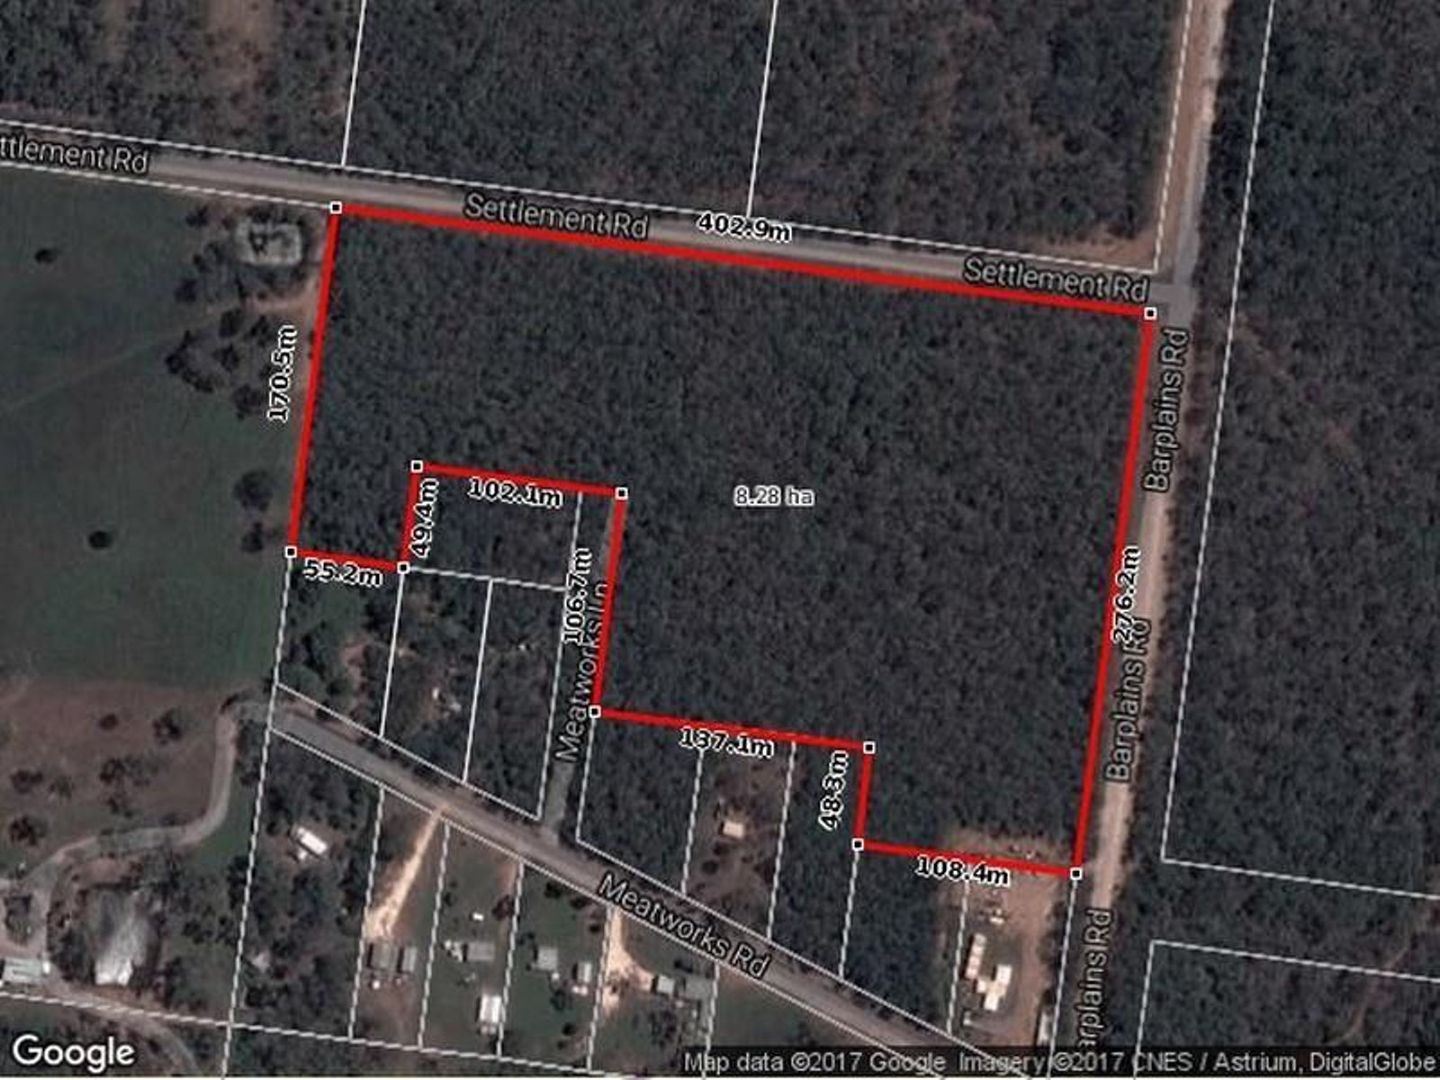 Lot 17 Settlement Road, St Lawrence QLD 4707, Image 0